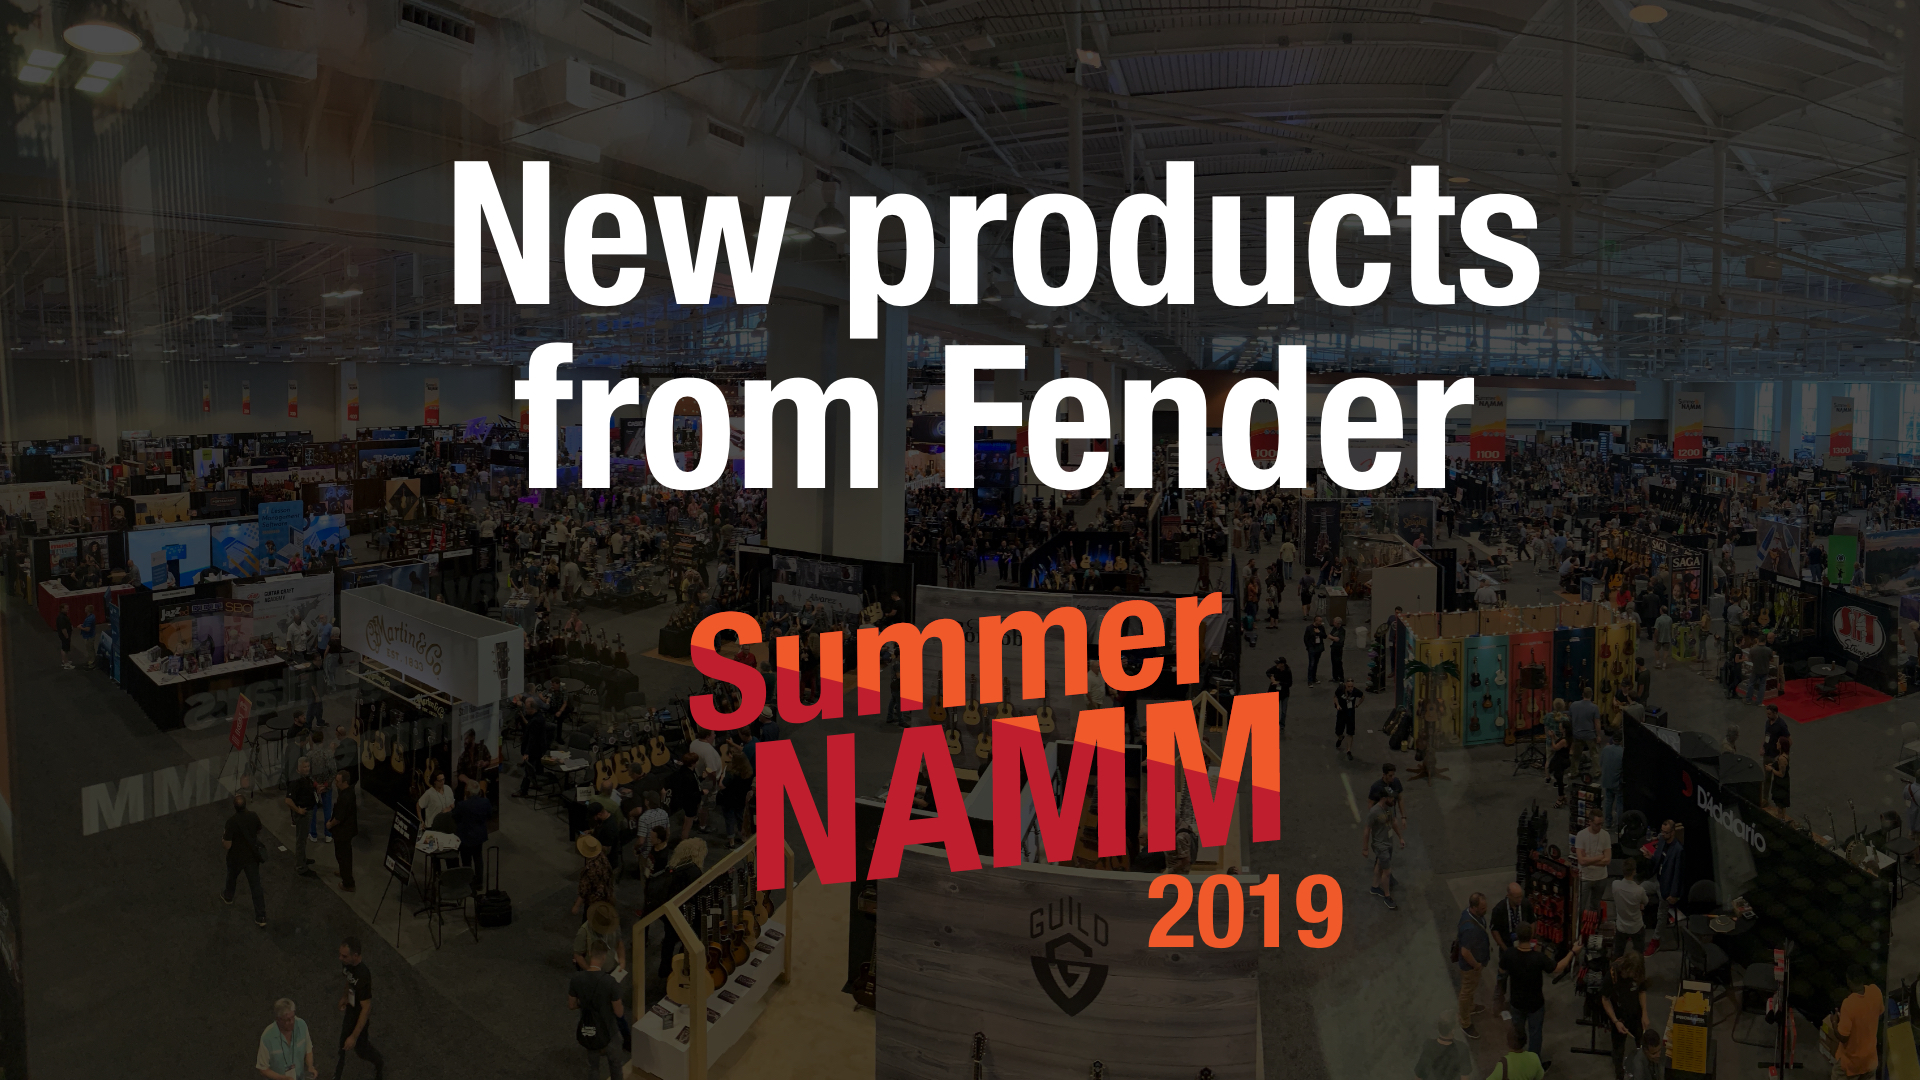 New products from Fender at the 2019 Summer NAMM show